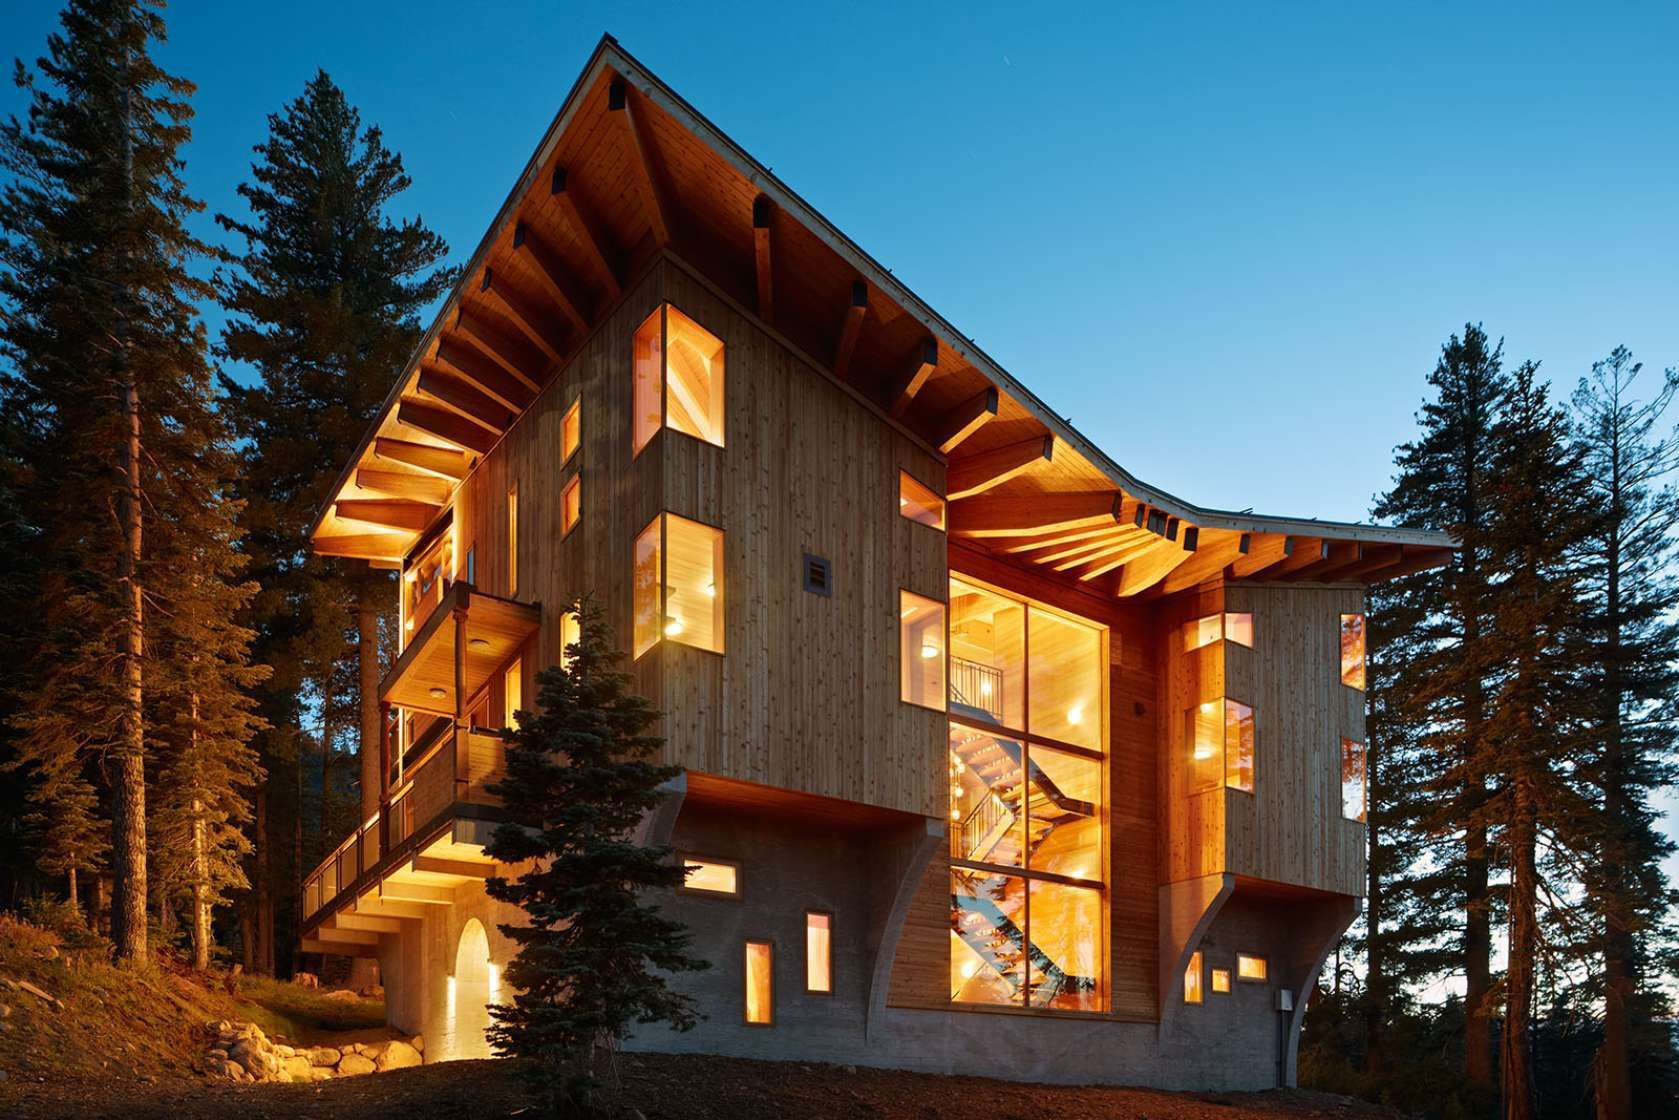 This mountain cabin for a family of six is located at 7,080 feet elevation on Sugar Bowl ski resort in ...